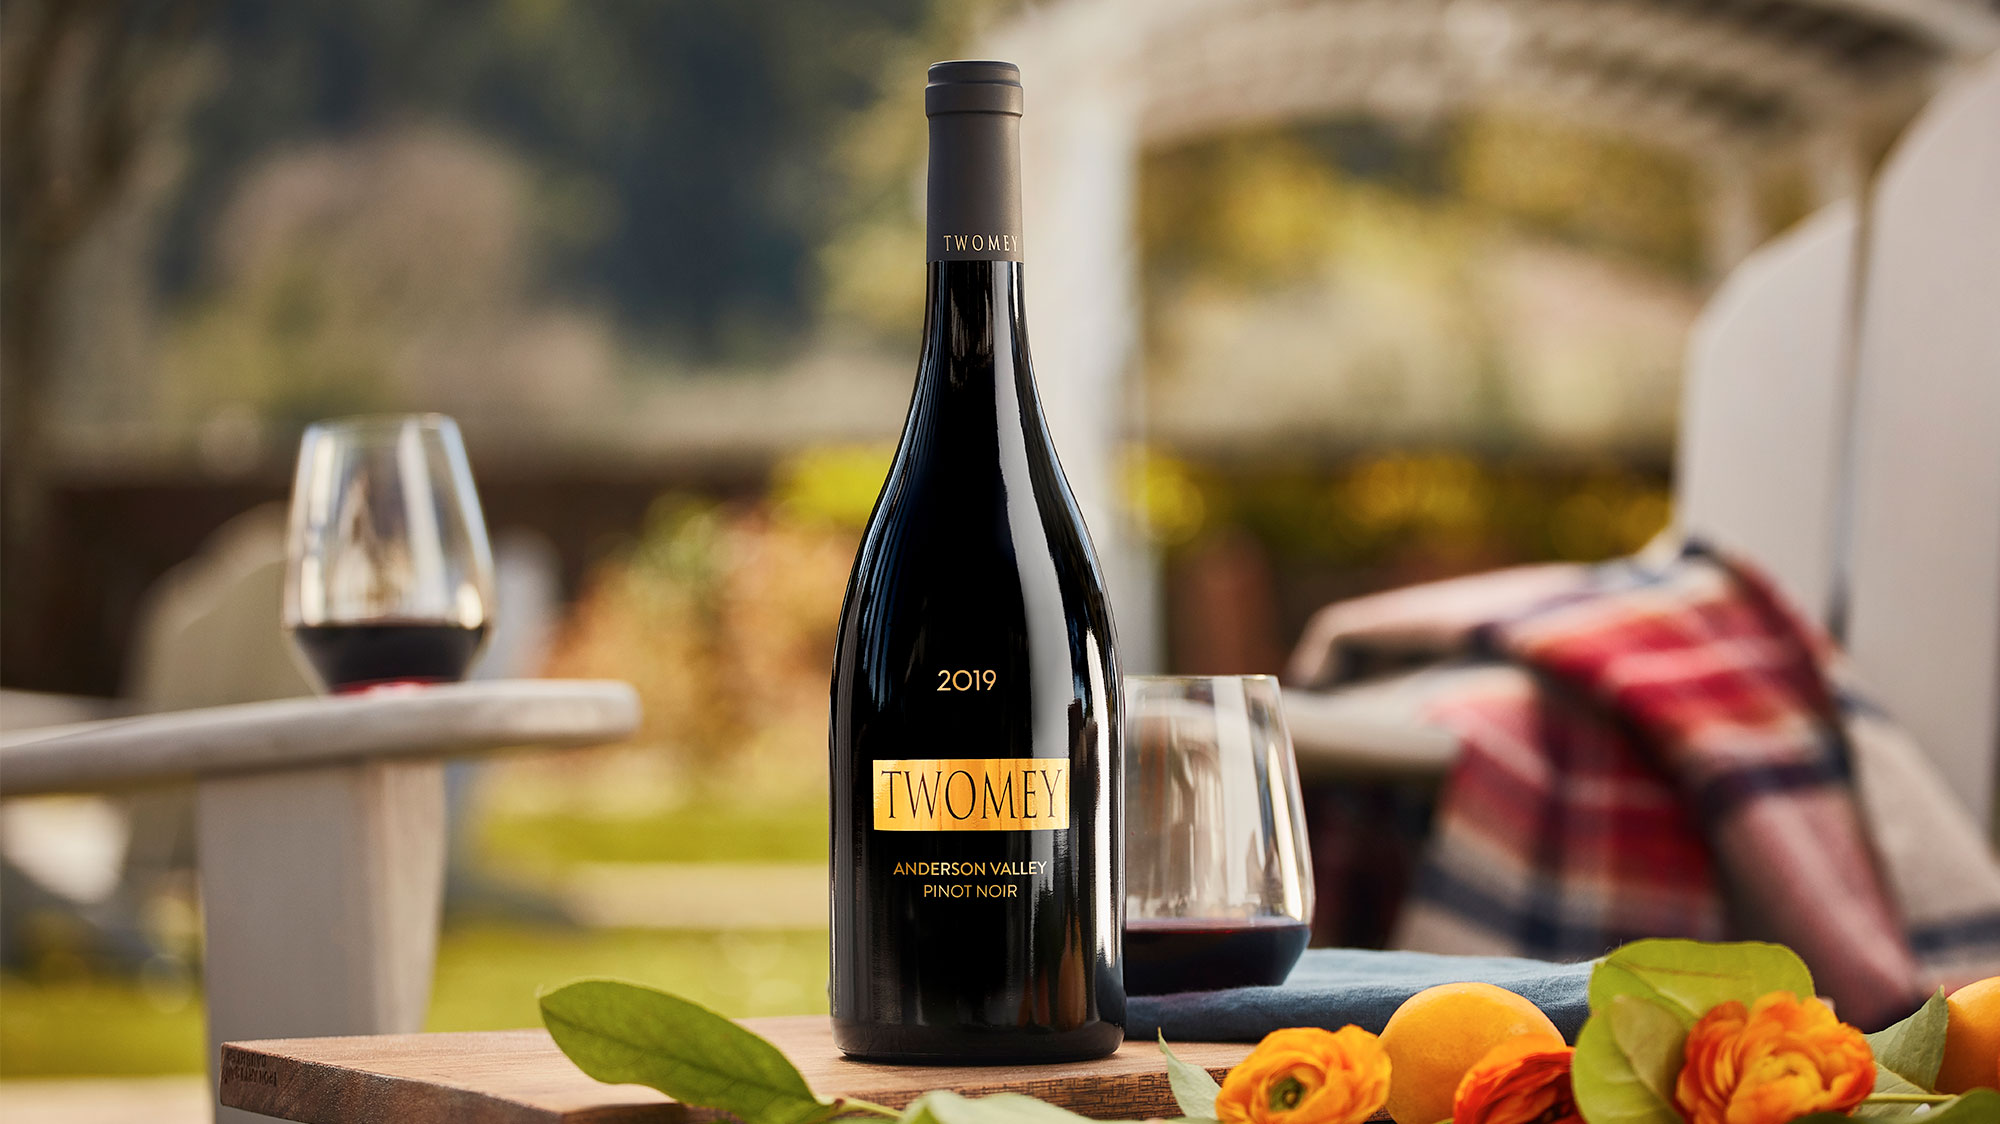 Twomey 2019 Anderson Valley Pinot Noir